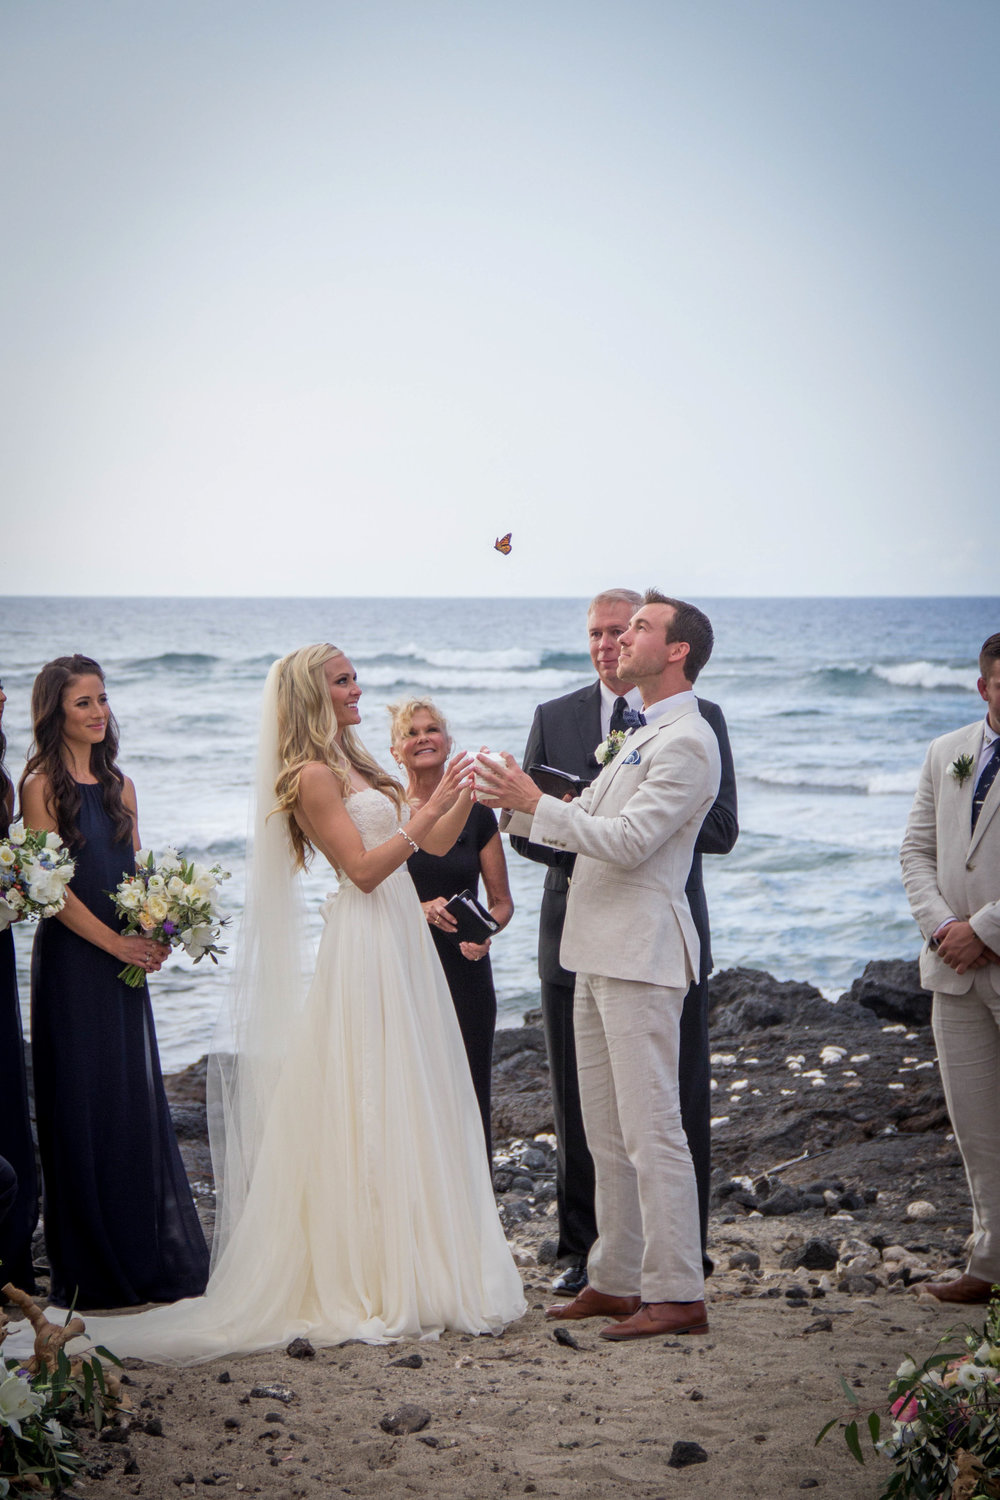 big island hawaii mauna lani resort wedding © kelilina photography 20160131162053-1.jpg